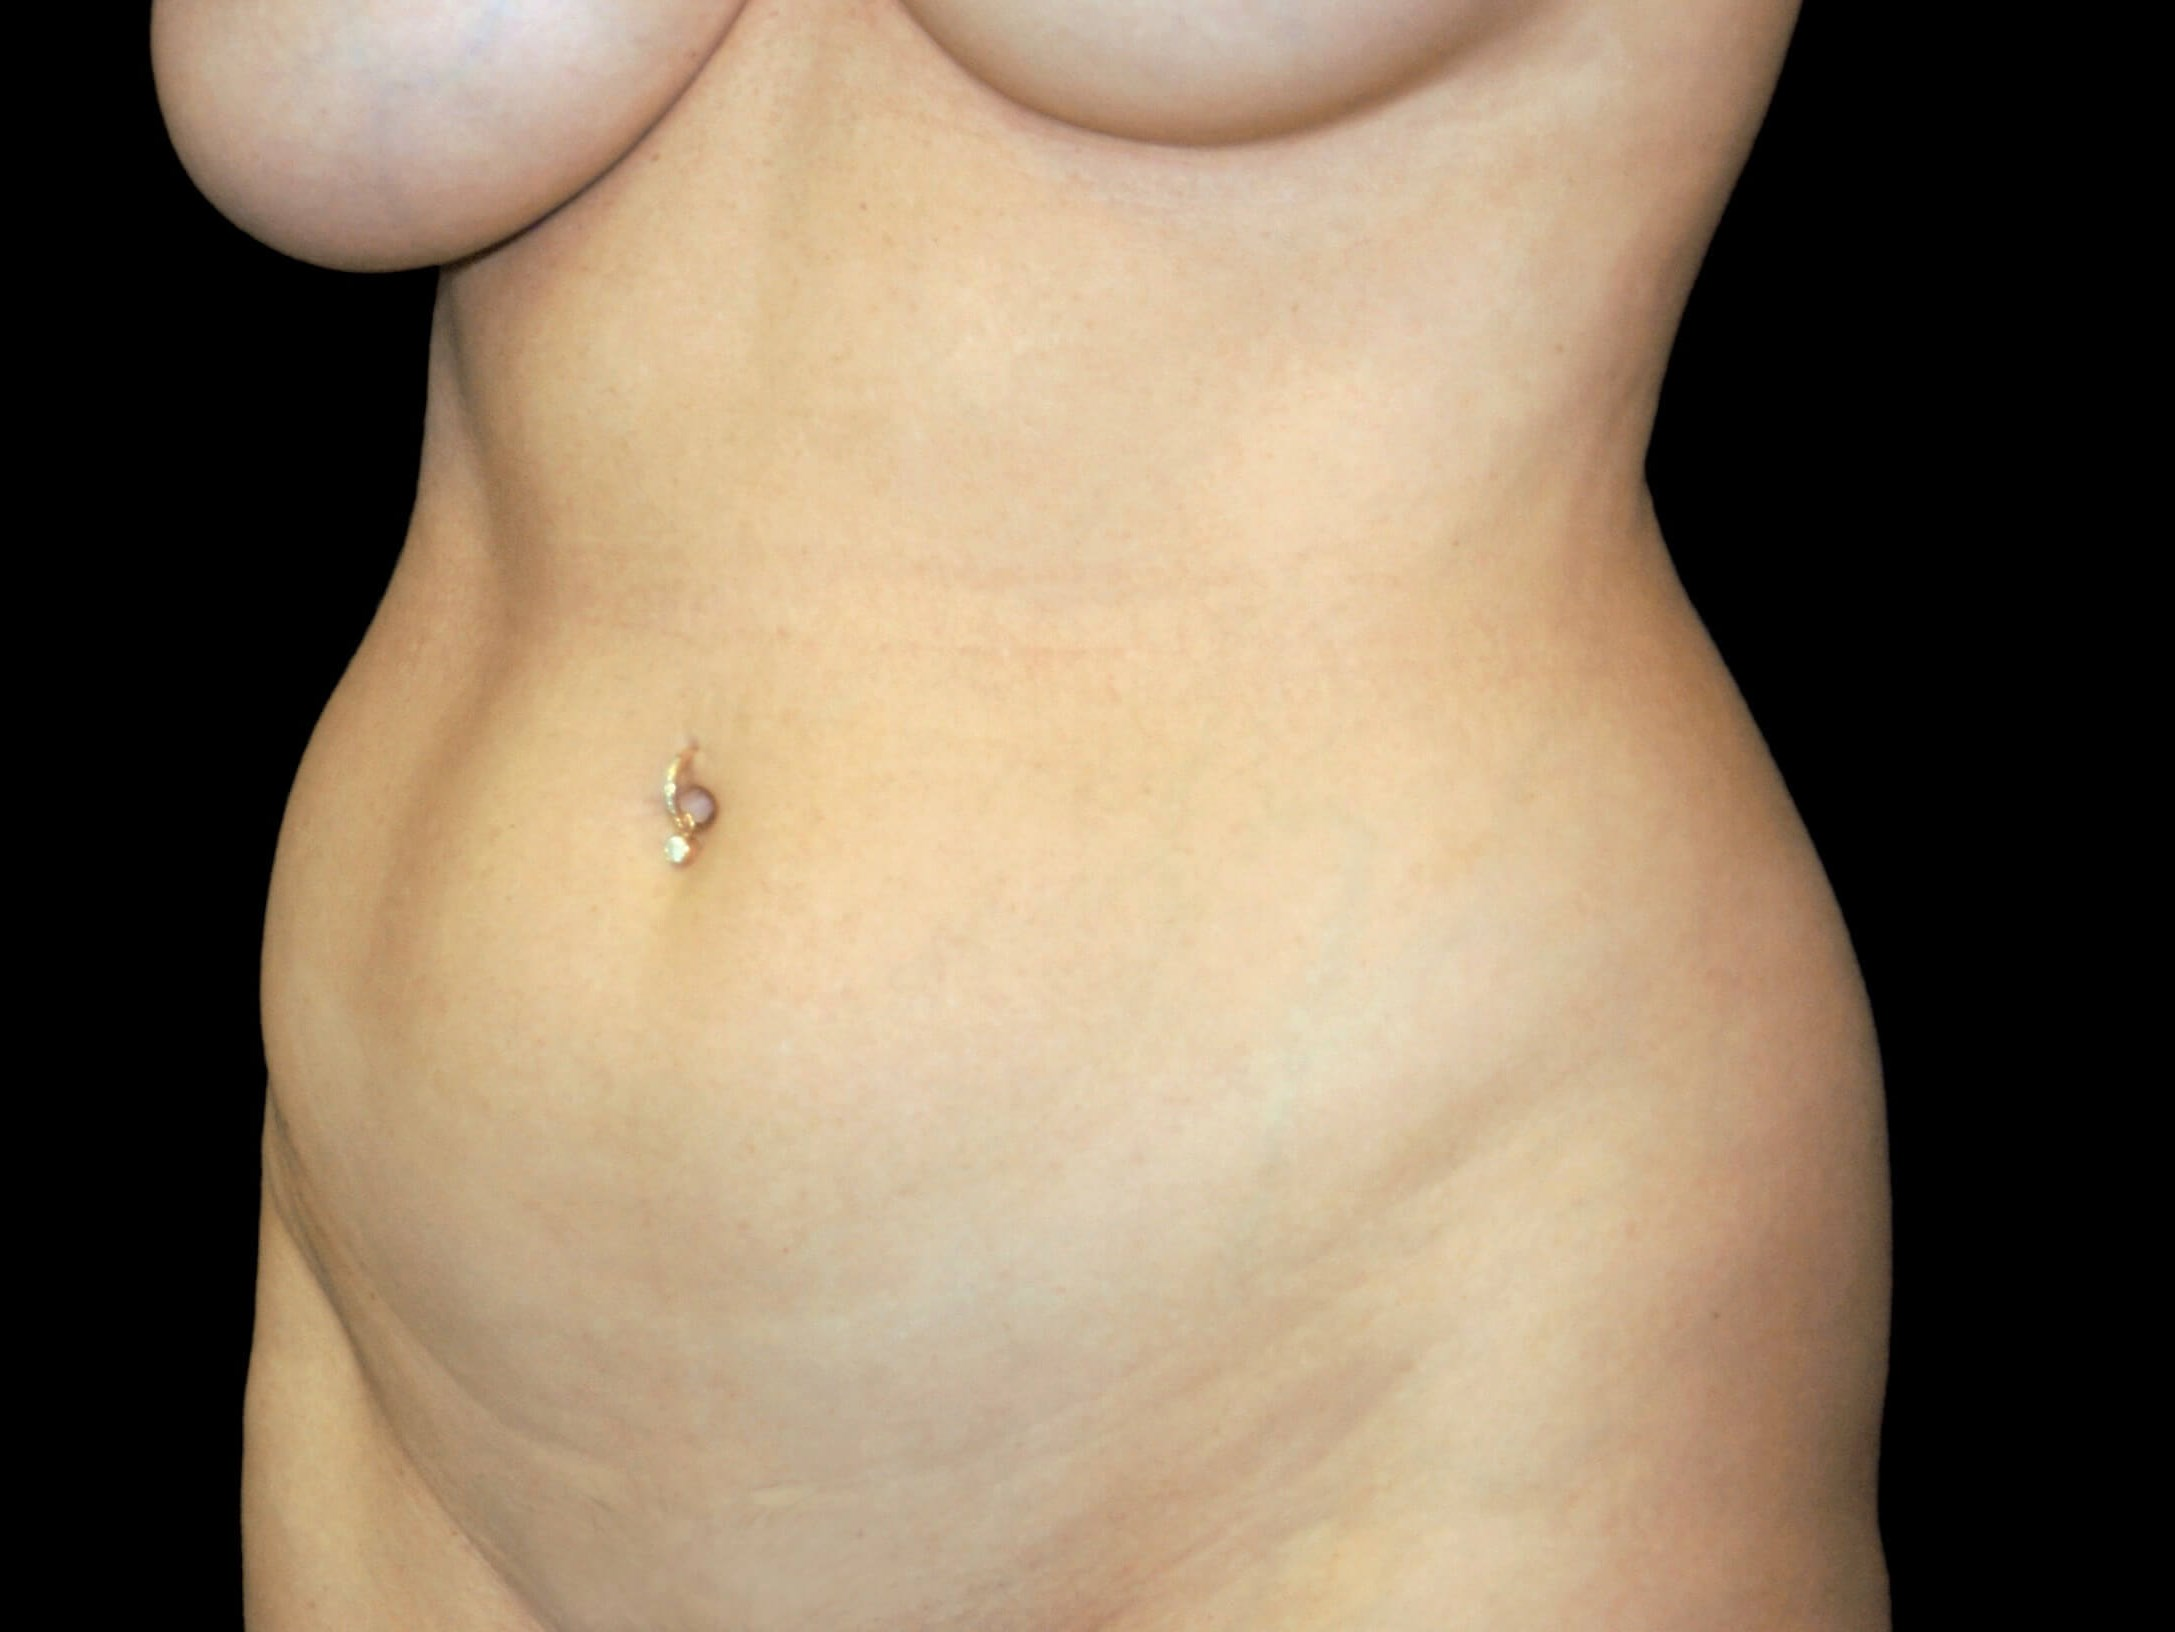 ALLEN WOMAN HAS VASER HIGH-DEFINITION LIPOSUCTION SURGERY